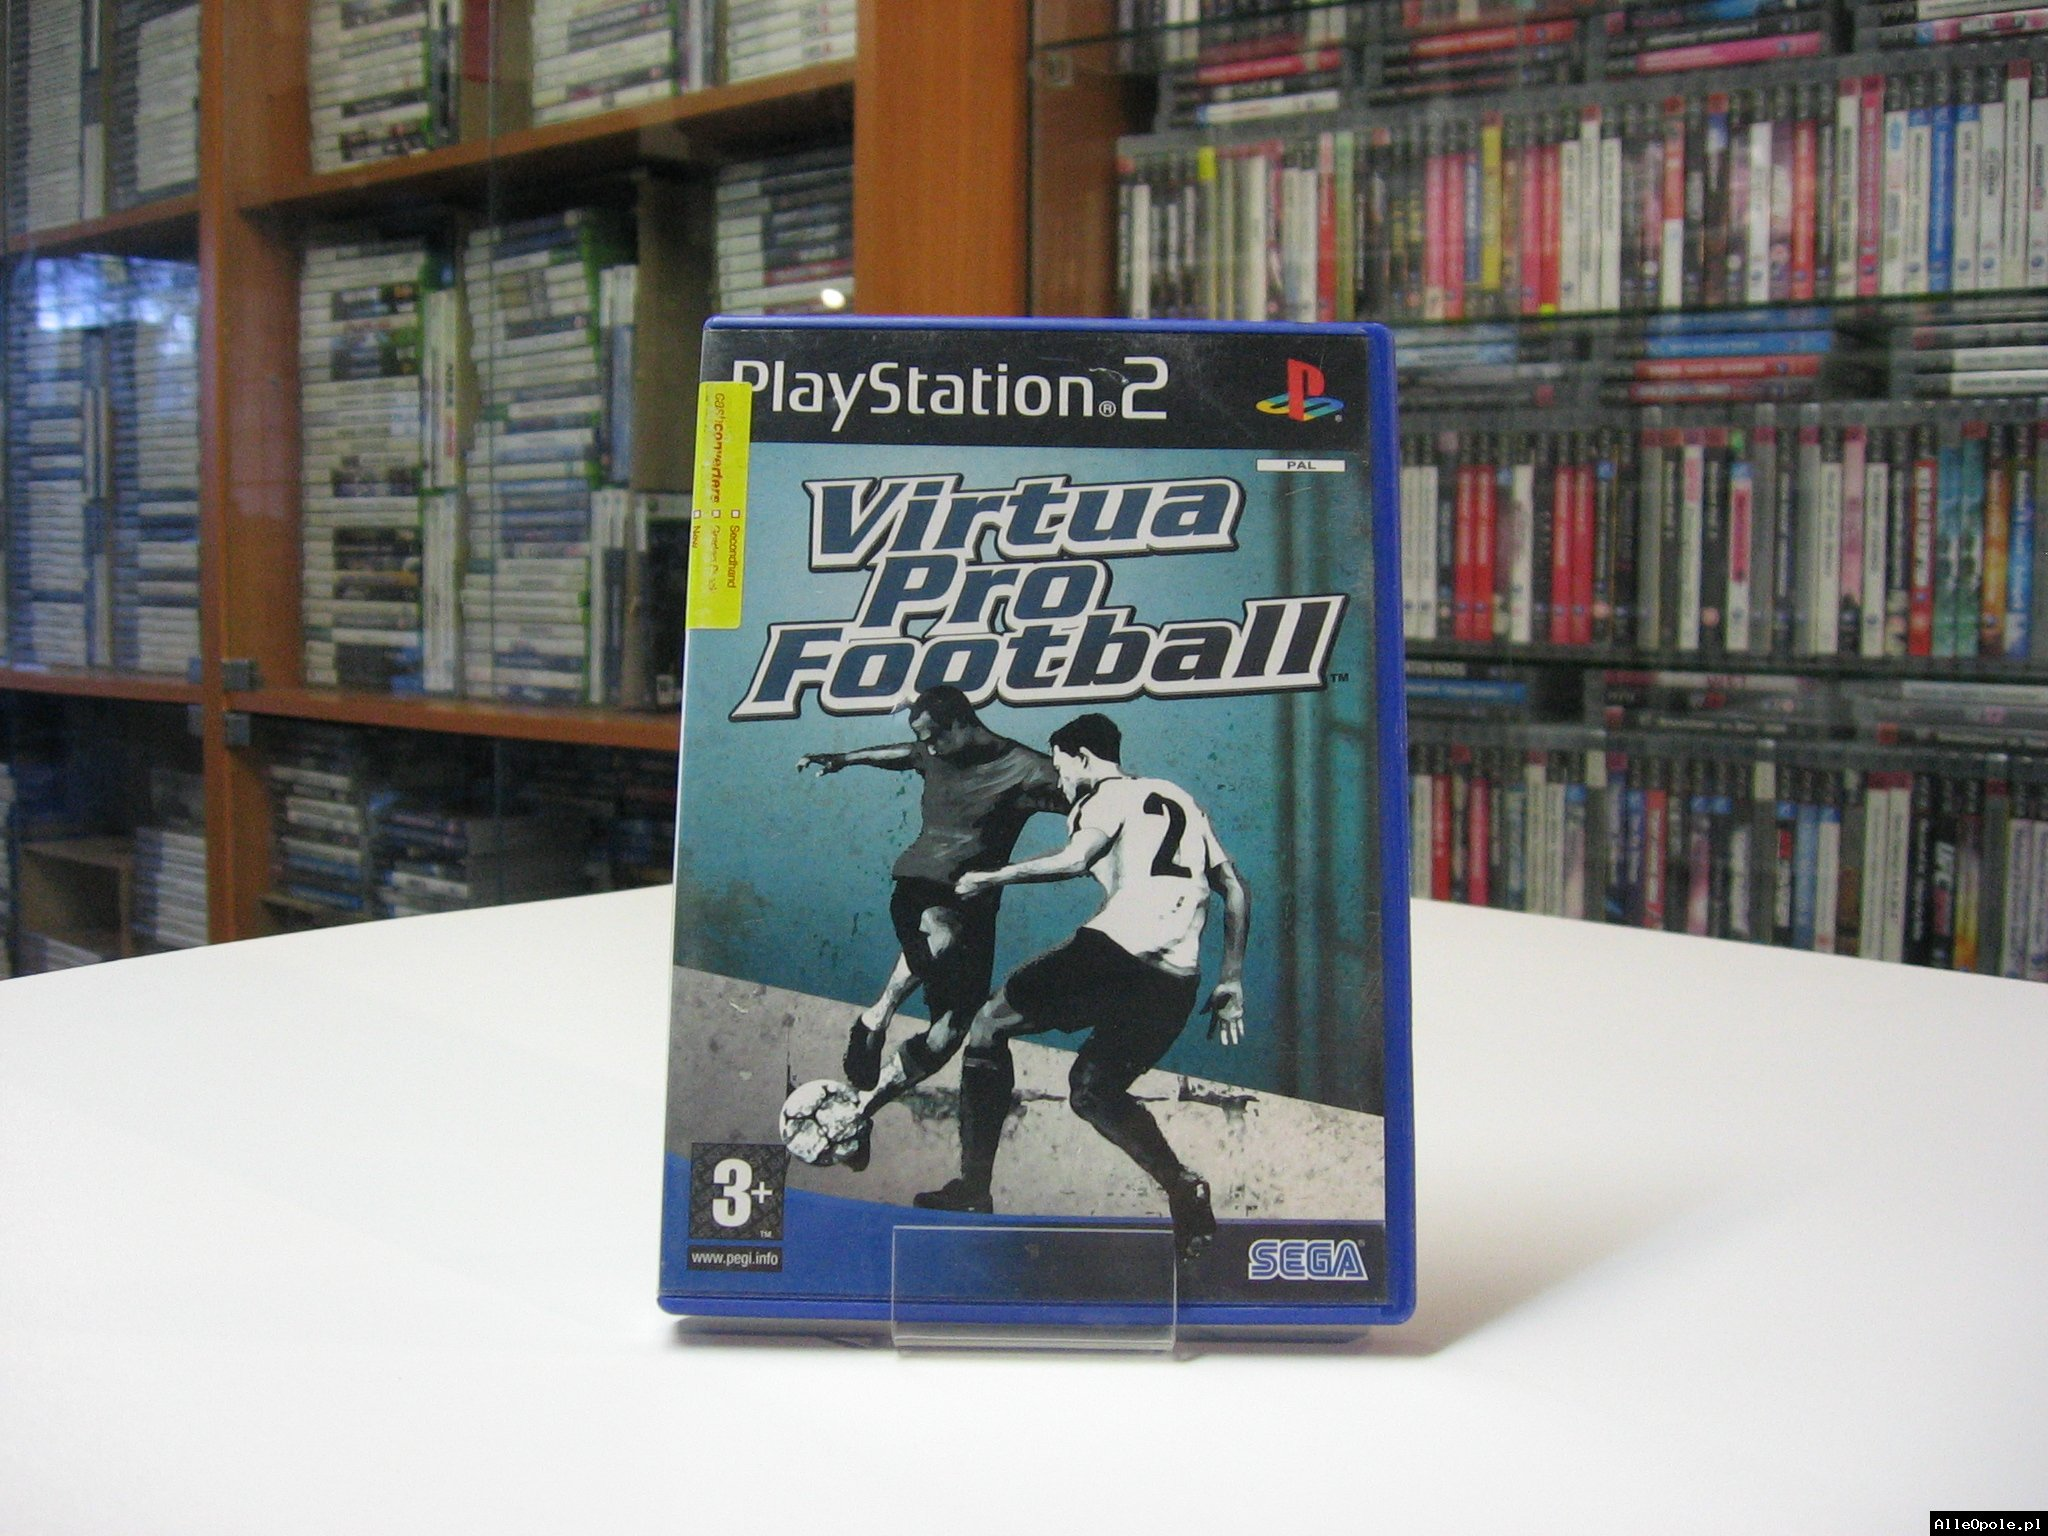 Virtua Pro Football - GRA Ps2 - Opole 0576